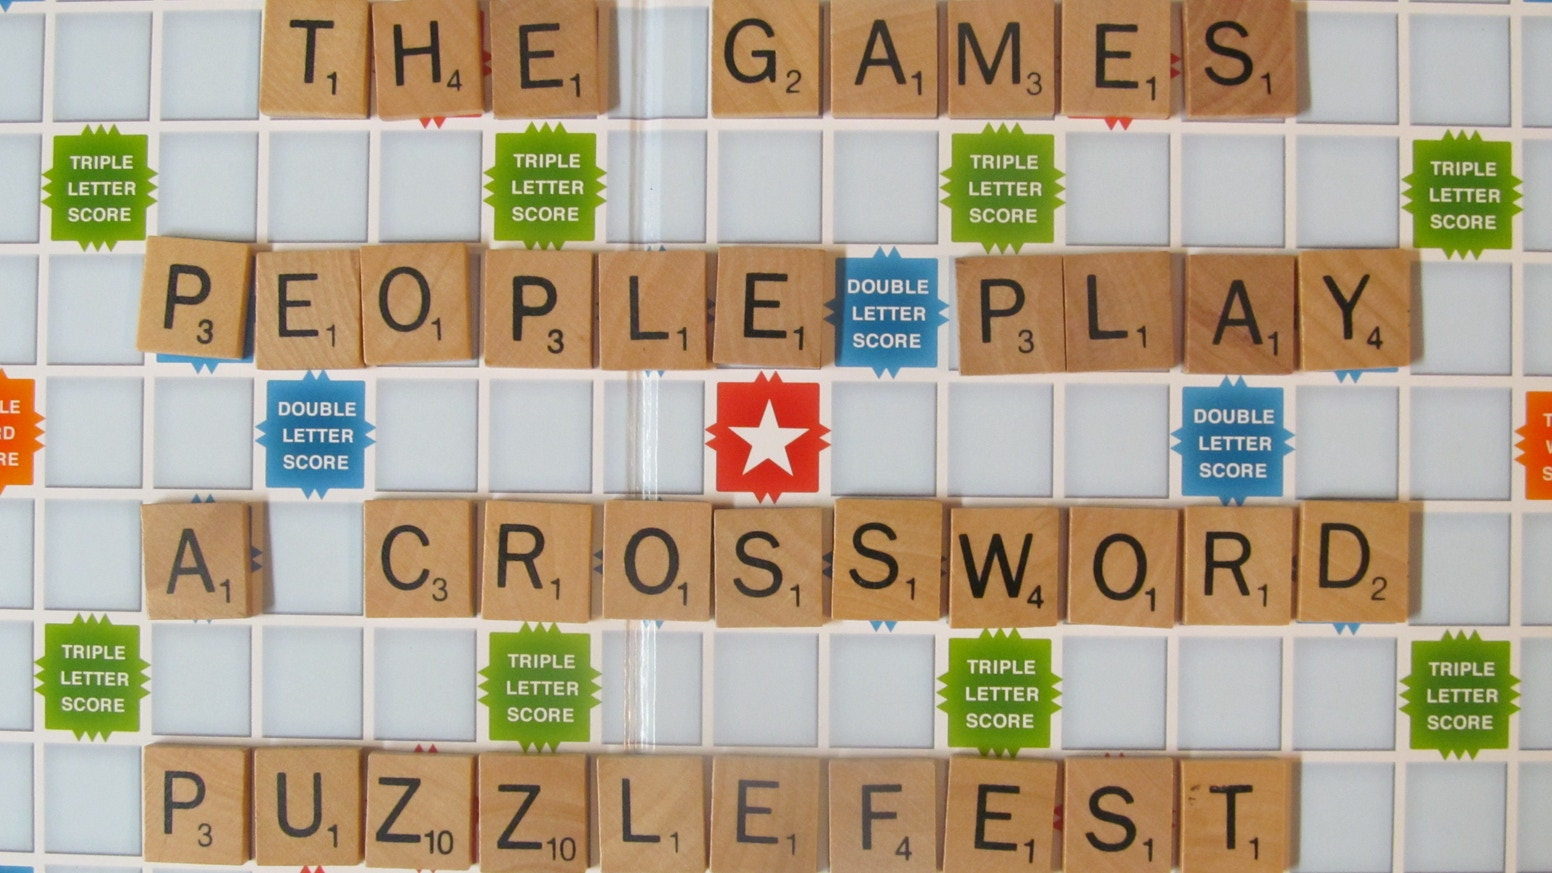 A Collection Of Connected Crosswords Based On Classic Board Games